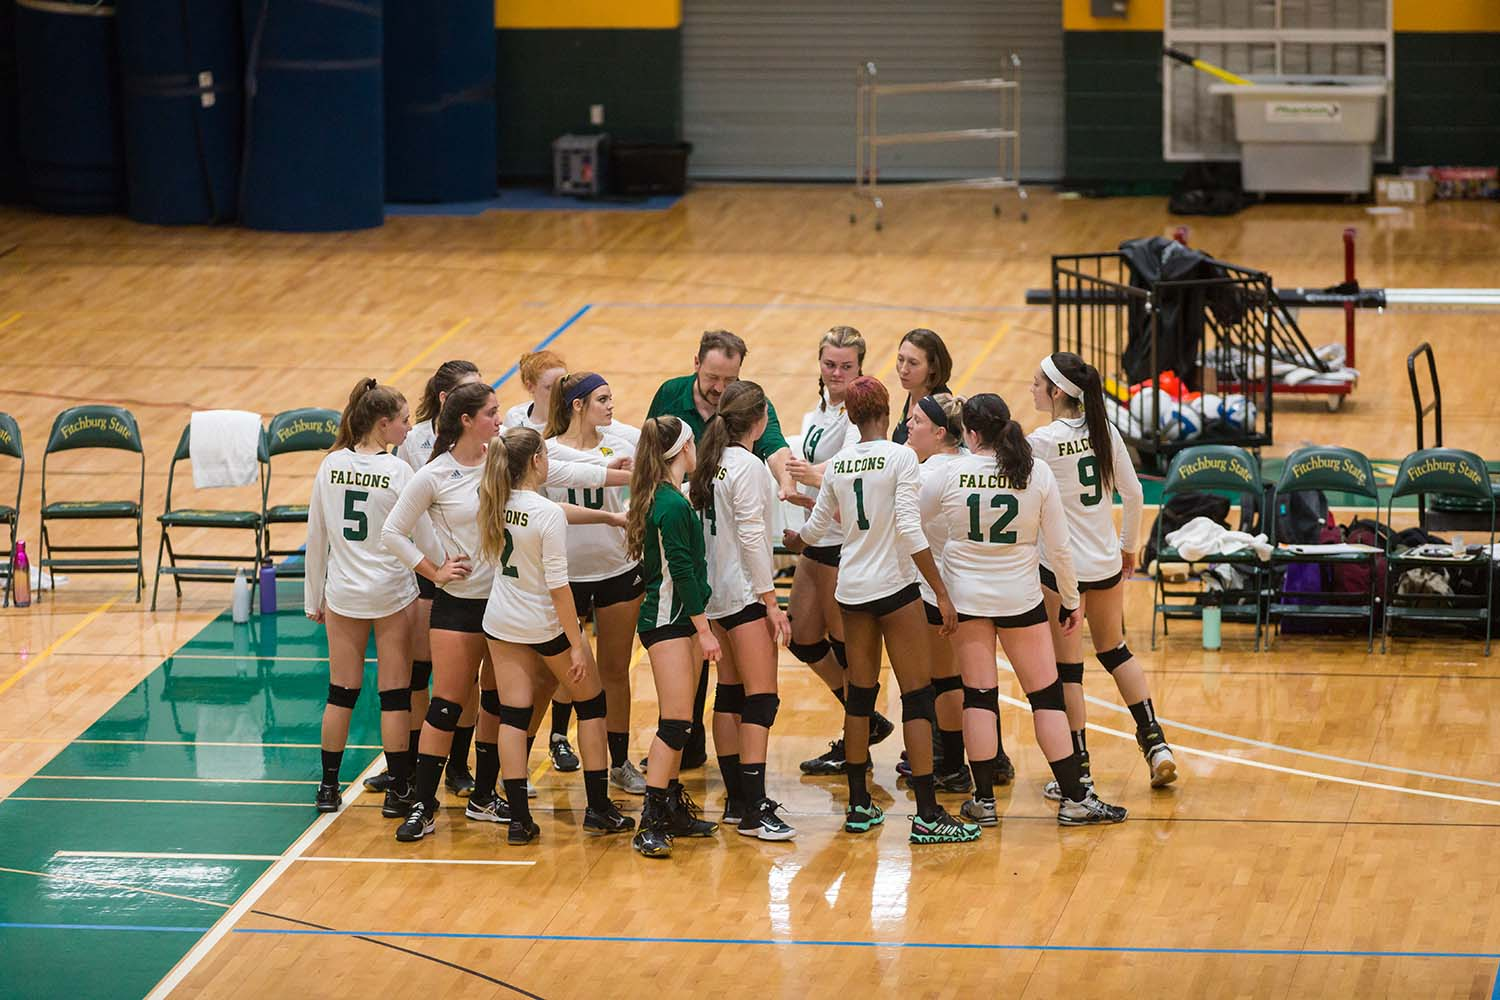 Rams Roll Past Falcons in Volleyball, 3-0